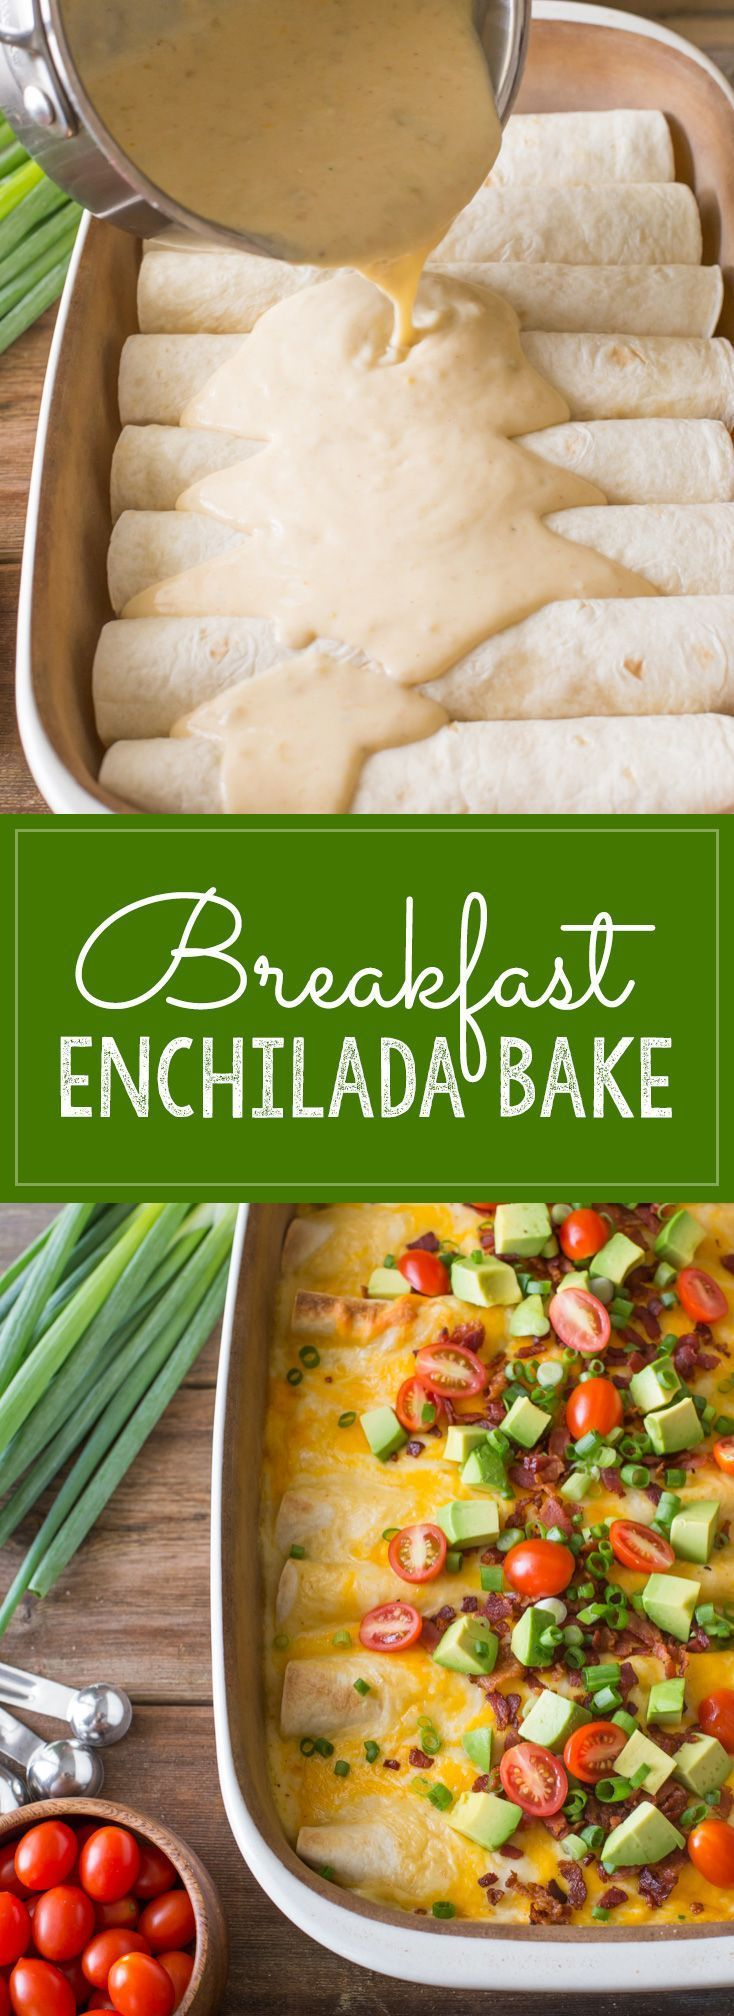 A super hearty, ultimate breakfast enchilada bake filled with eggs and cheese that can be served any time of the day. super hearty, ultimate breakfast enchilada bake filled with eggs and cheese that can be served any time of the day.